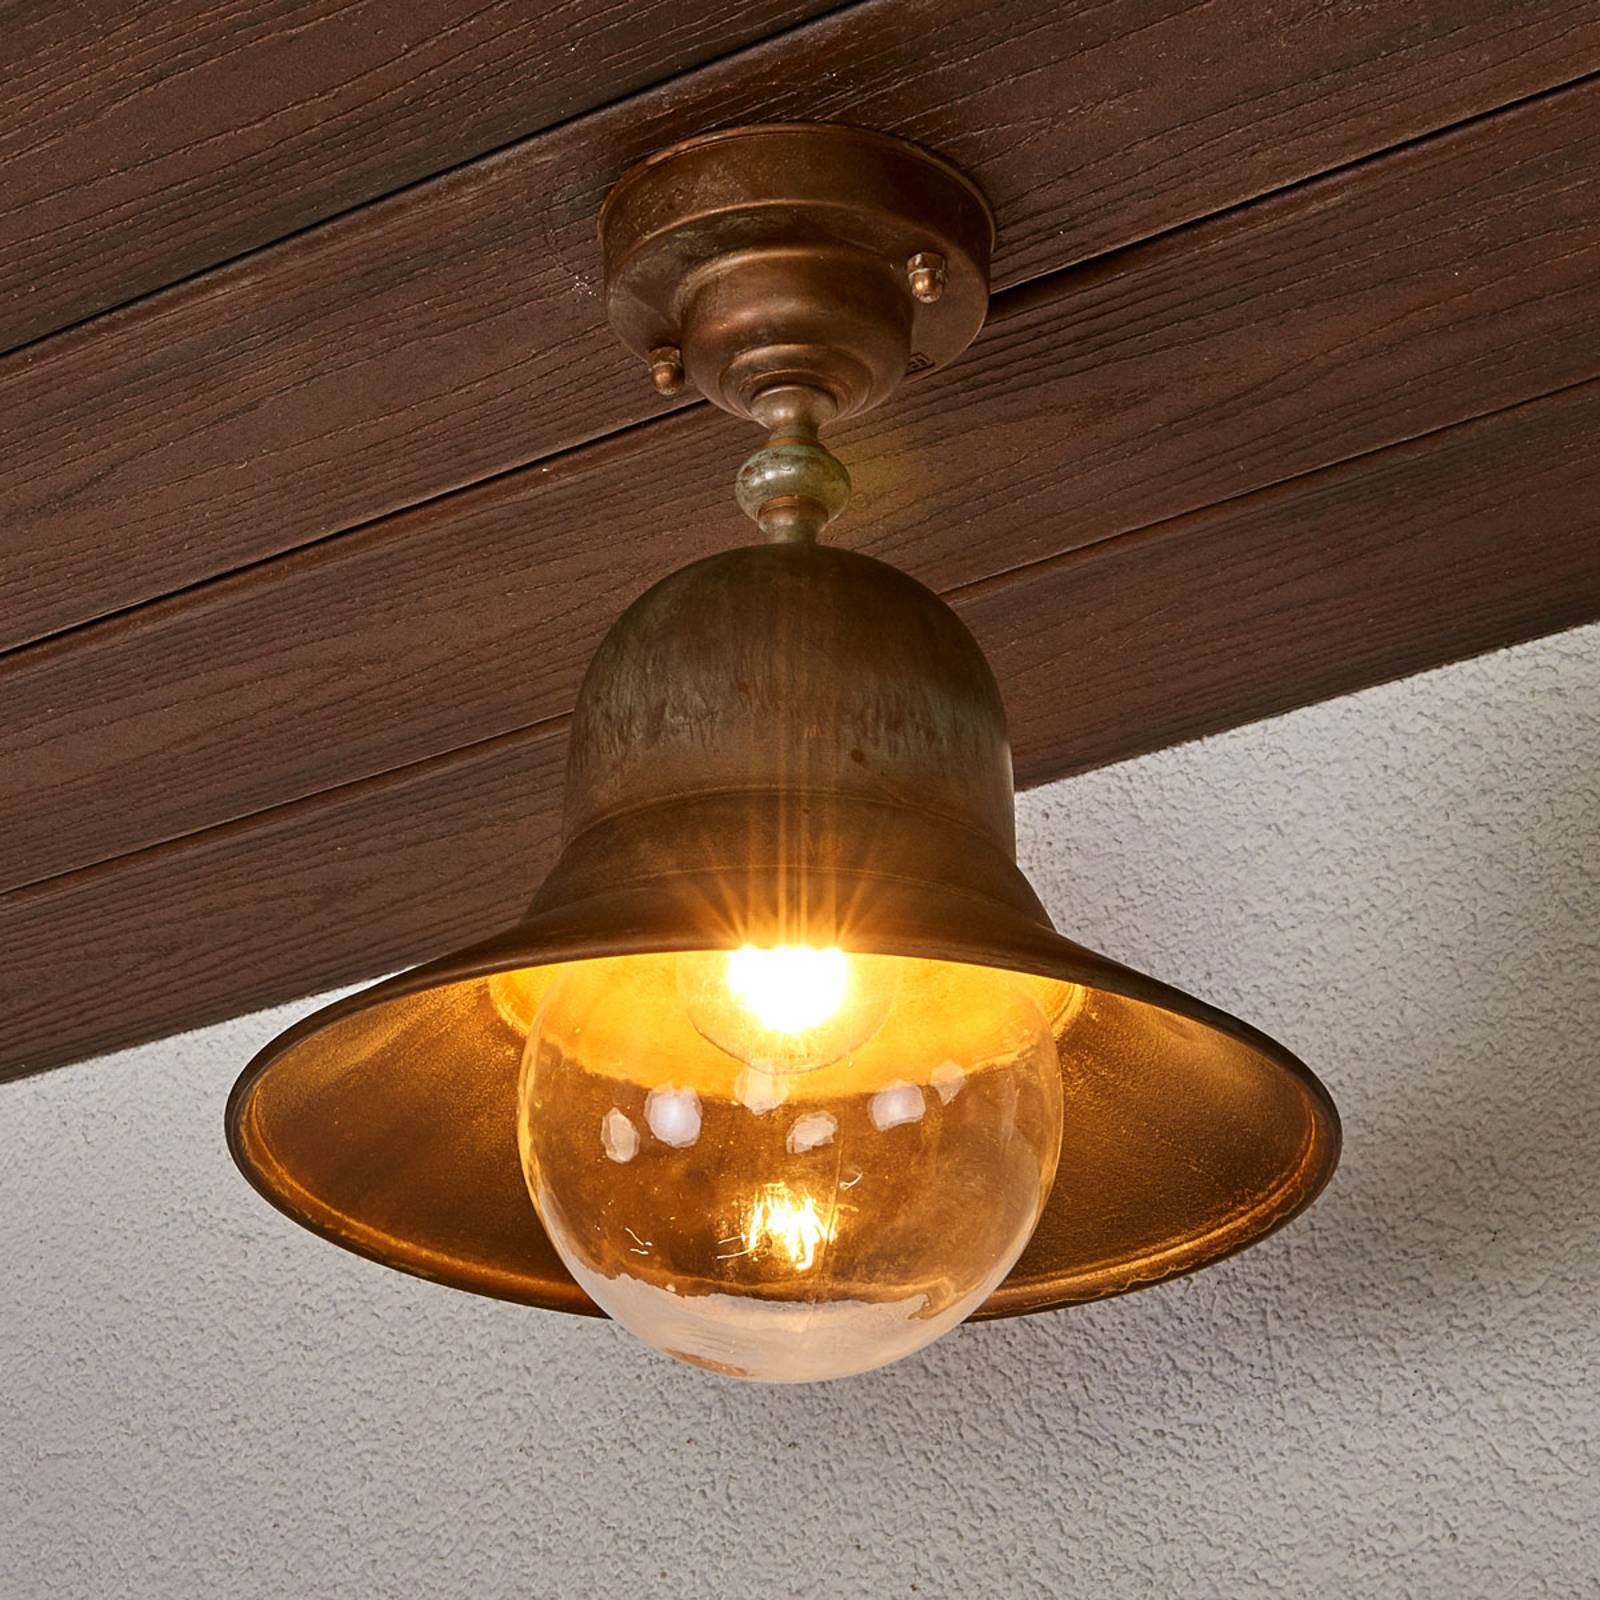 Brass ceiling light Marquesa for outdoors from Moretti